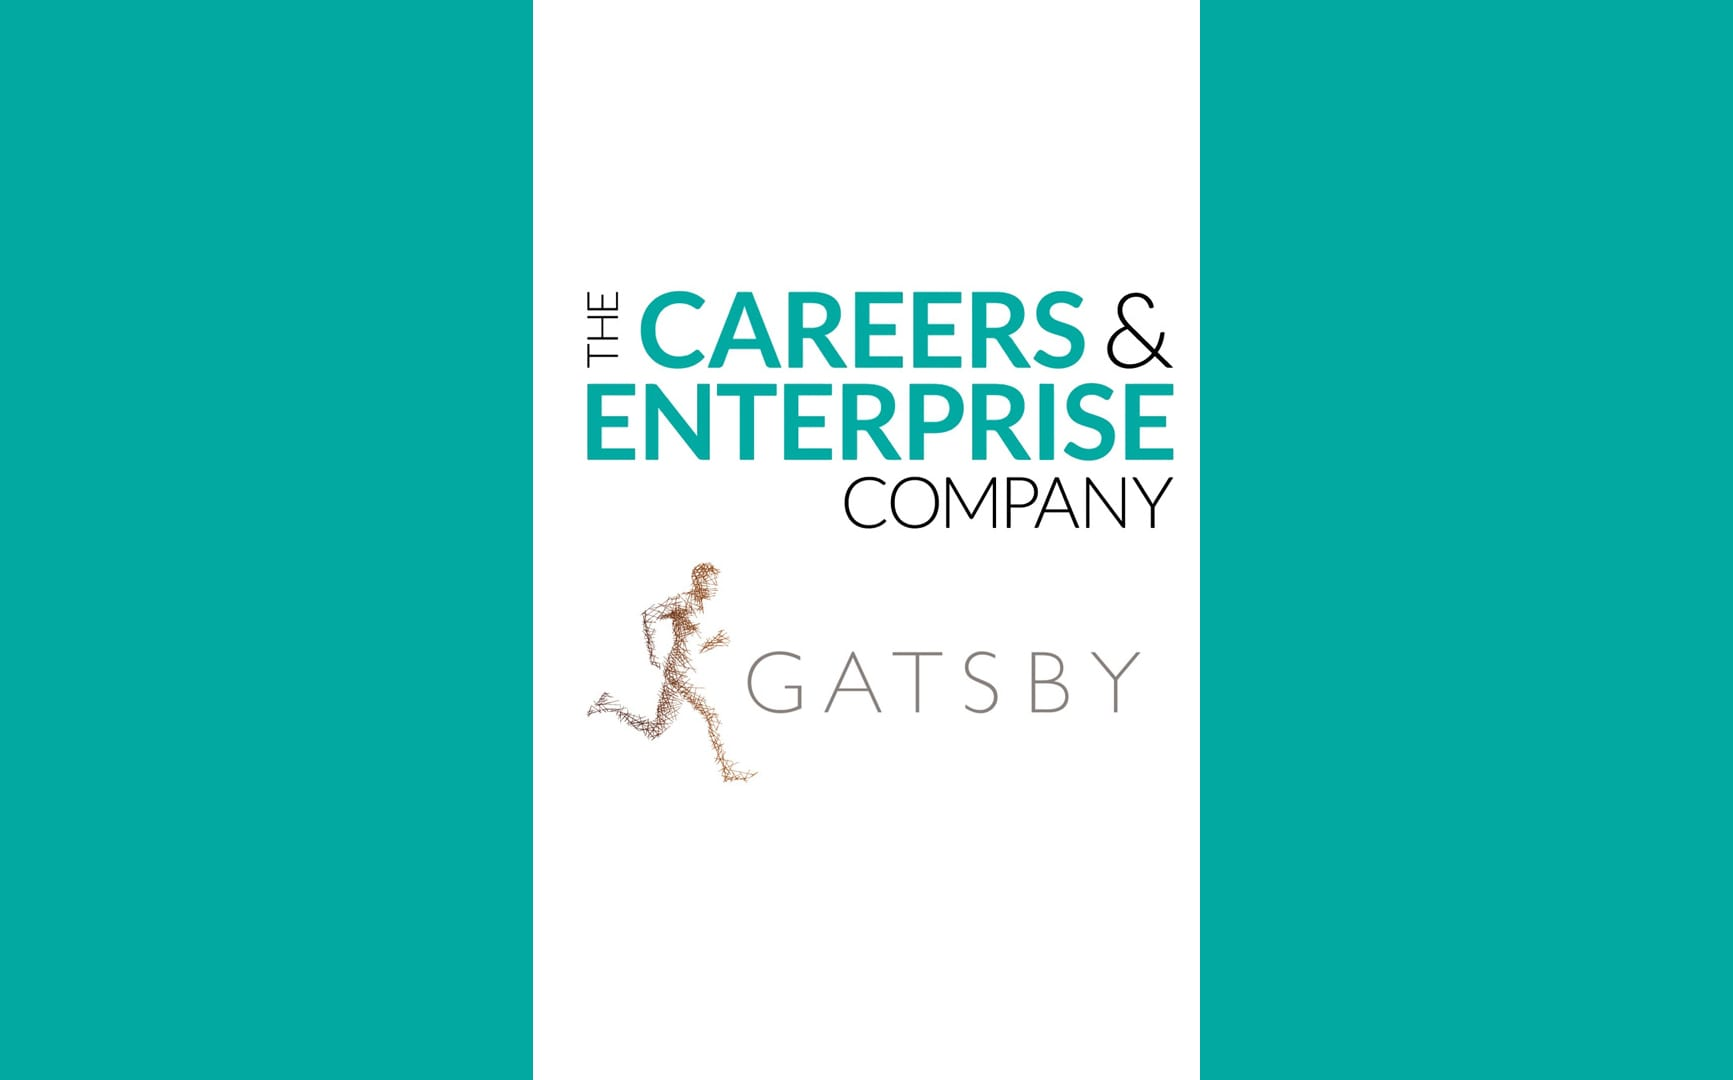 Gatsby - The Careers and Enterprise Company